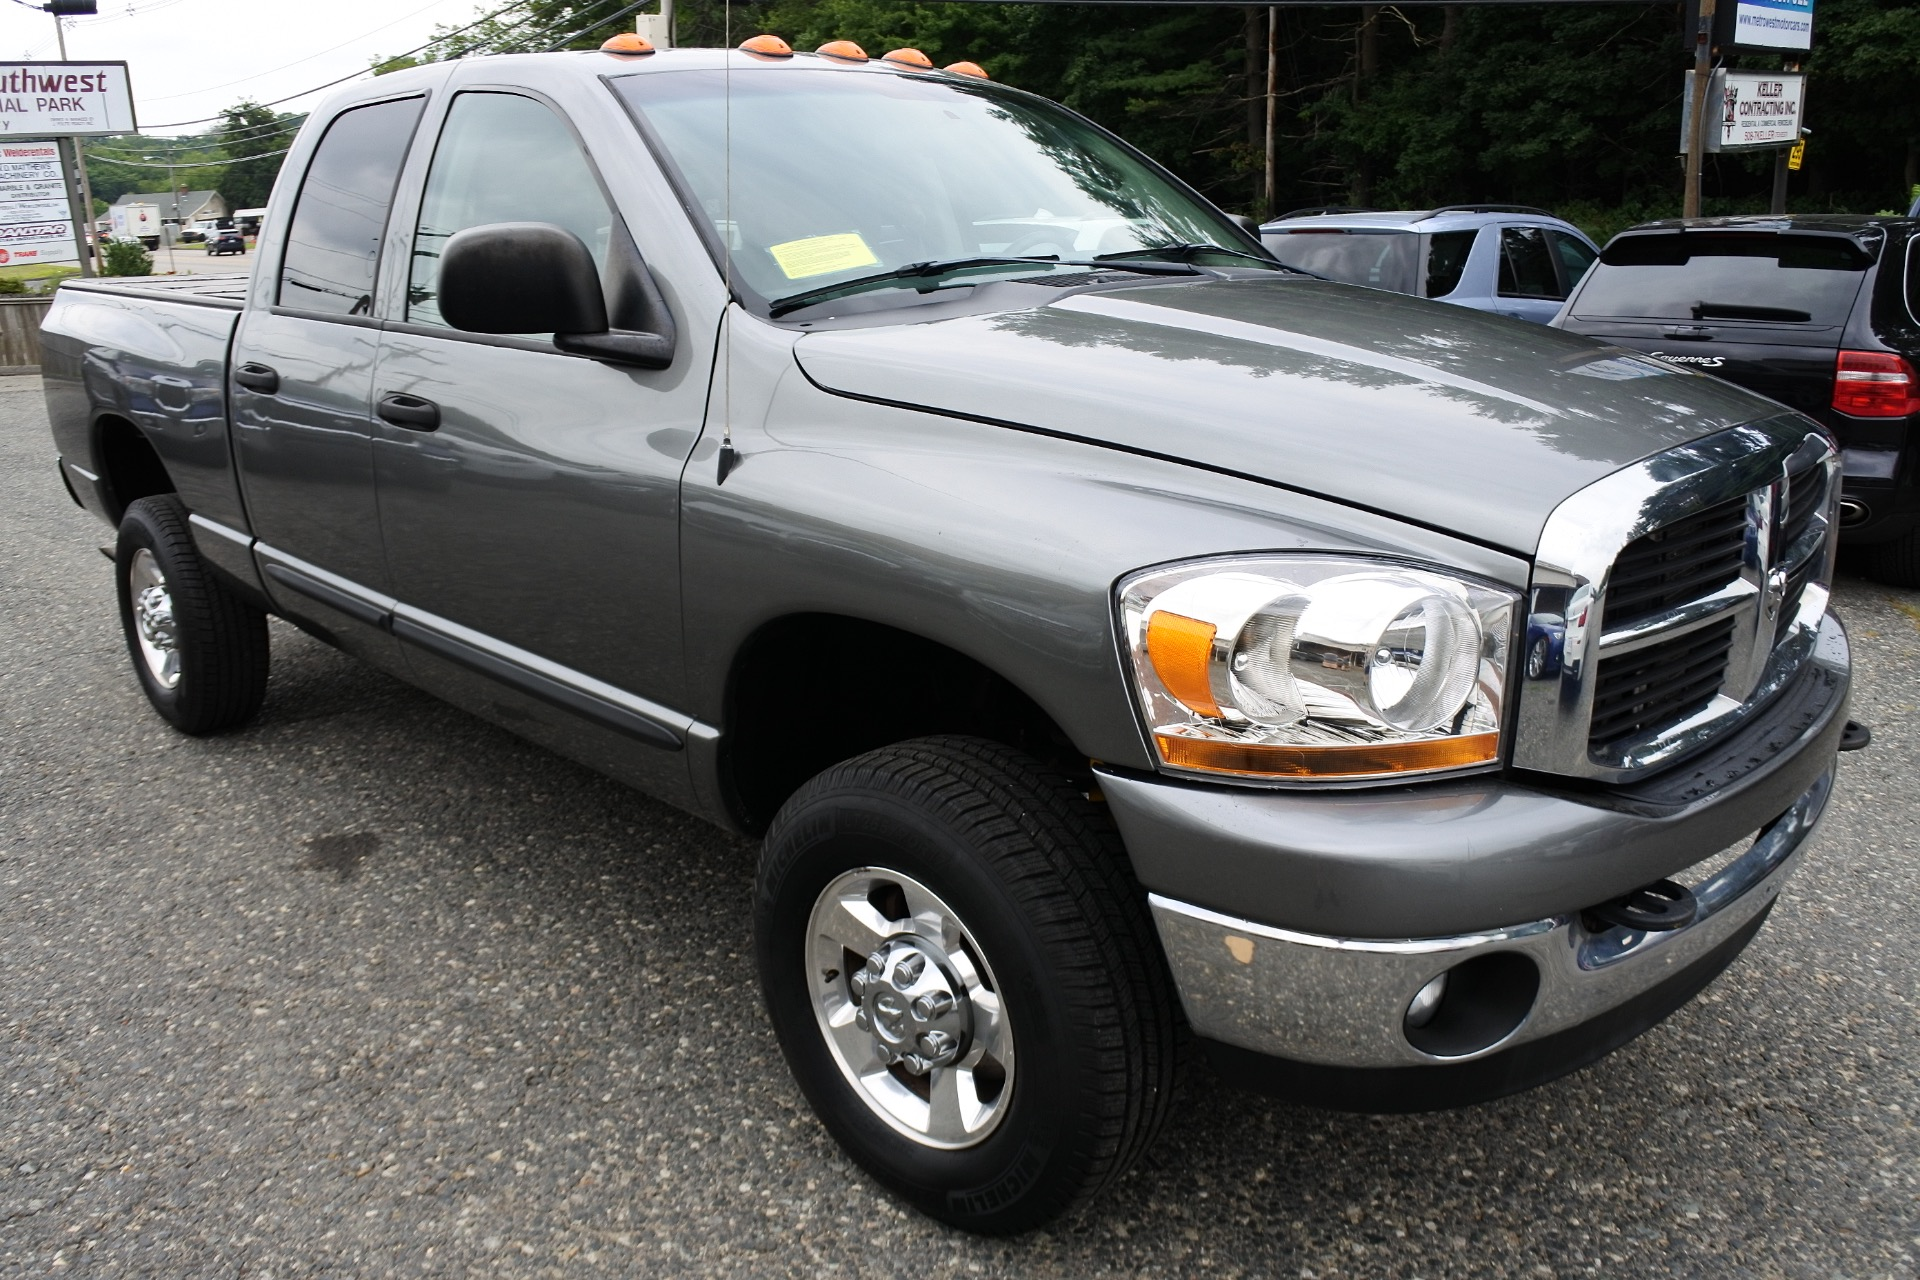 Used 2006 Dodge Ram 2500 4dr Quad Cab 140.5 4WD SLT Used 2006 Dodge Ram 2500 4dr Quad Cab 140.5 4WD SLT for sale  at Metro West Motorcars LLC in Shrewsbury MA 7